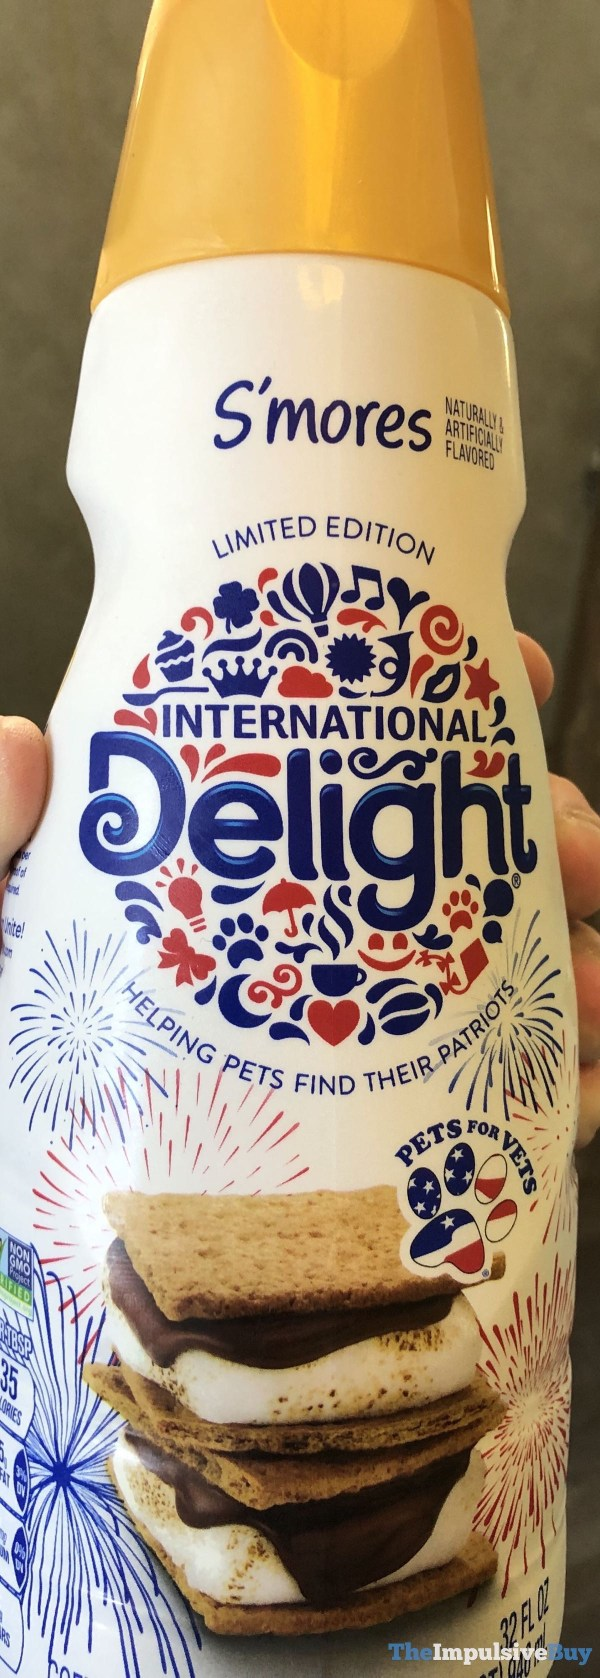 International Delight Limited Edition S mores Creamer